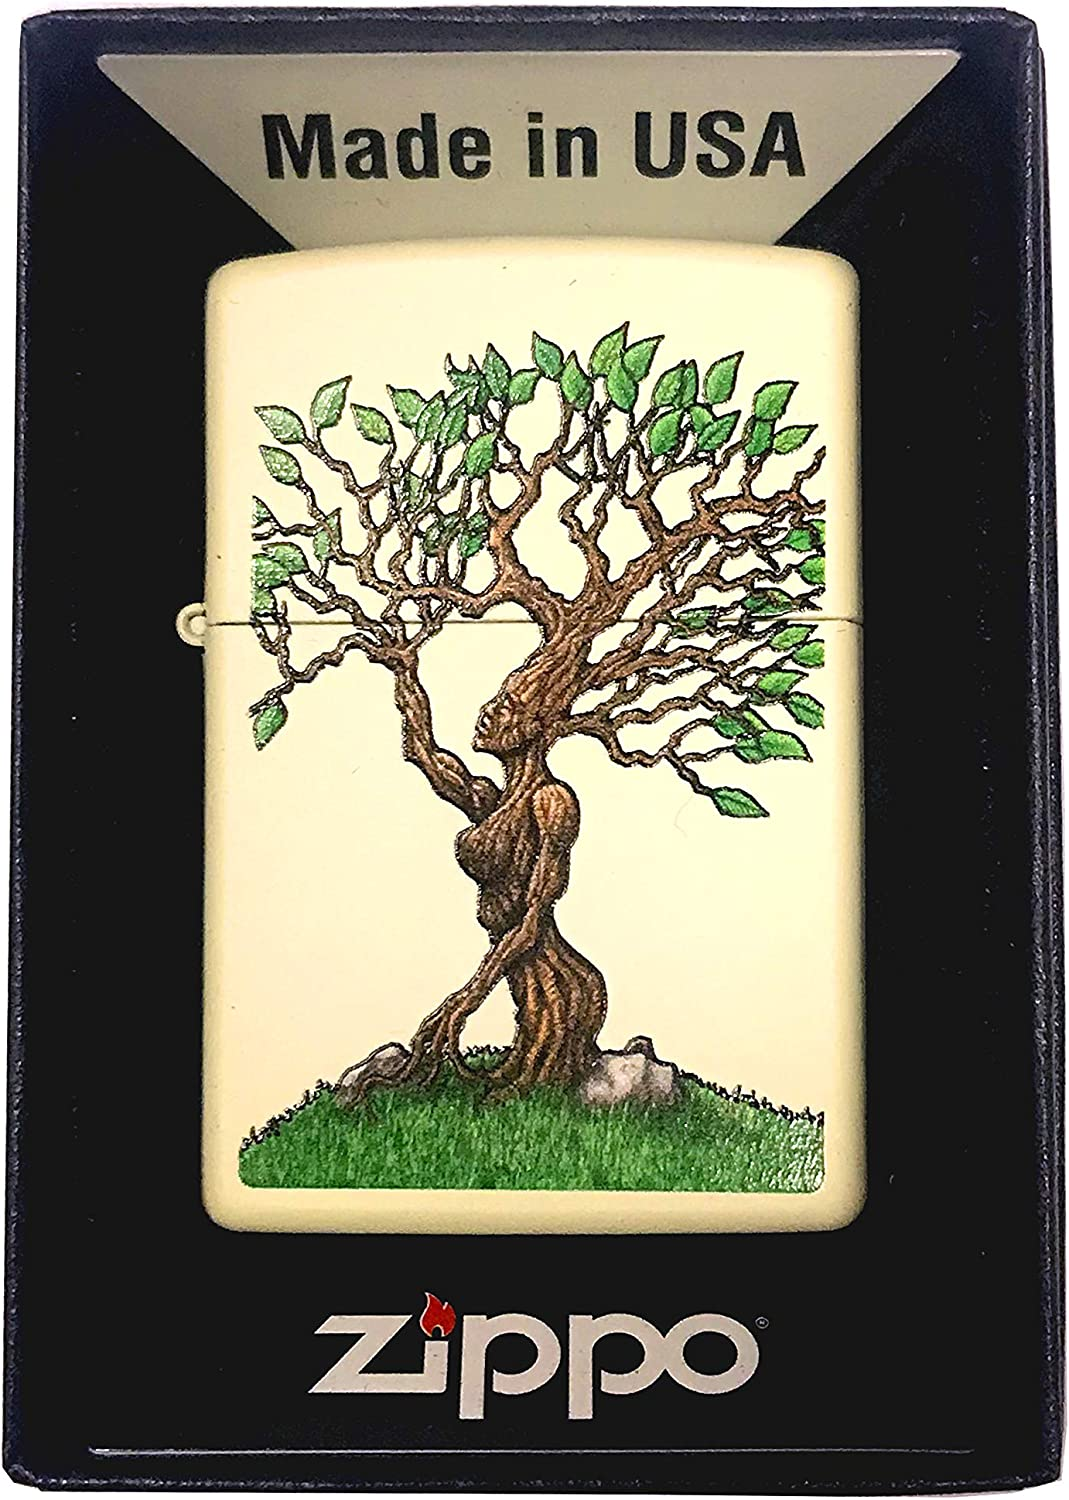 Zippo Custom Lighter - Forest Nymph Tree Woman